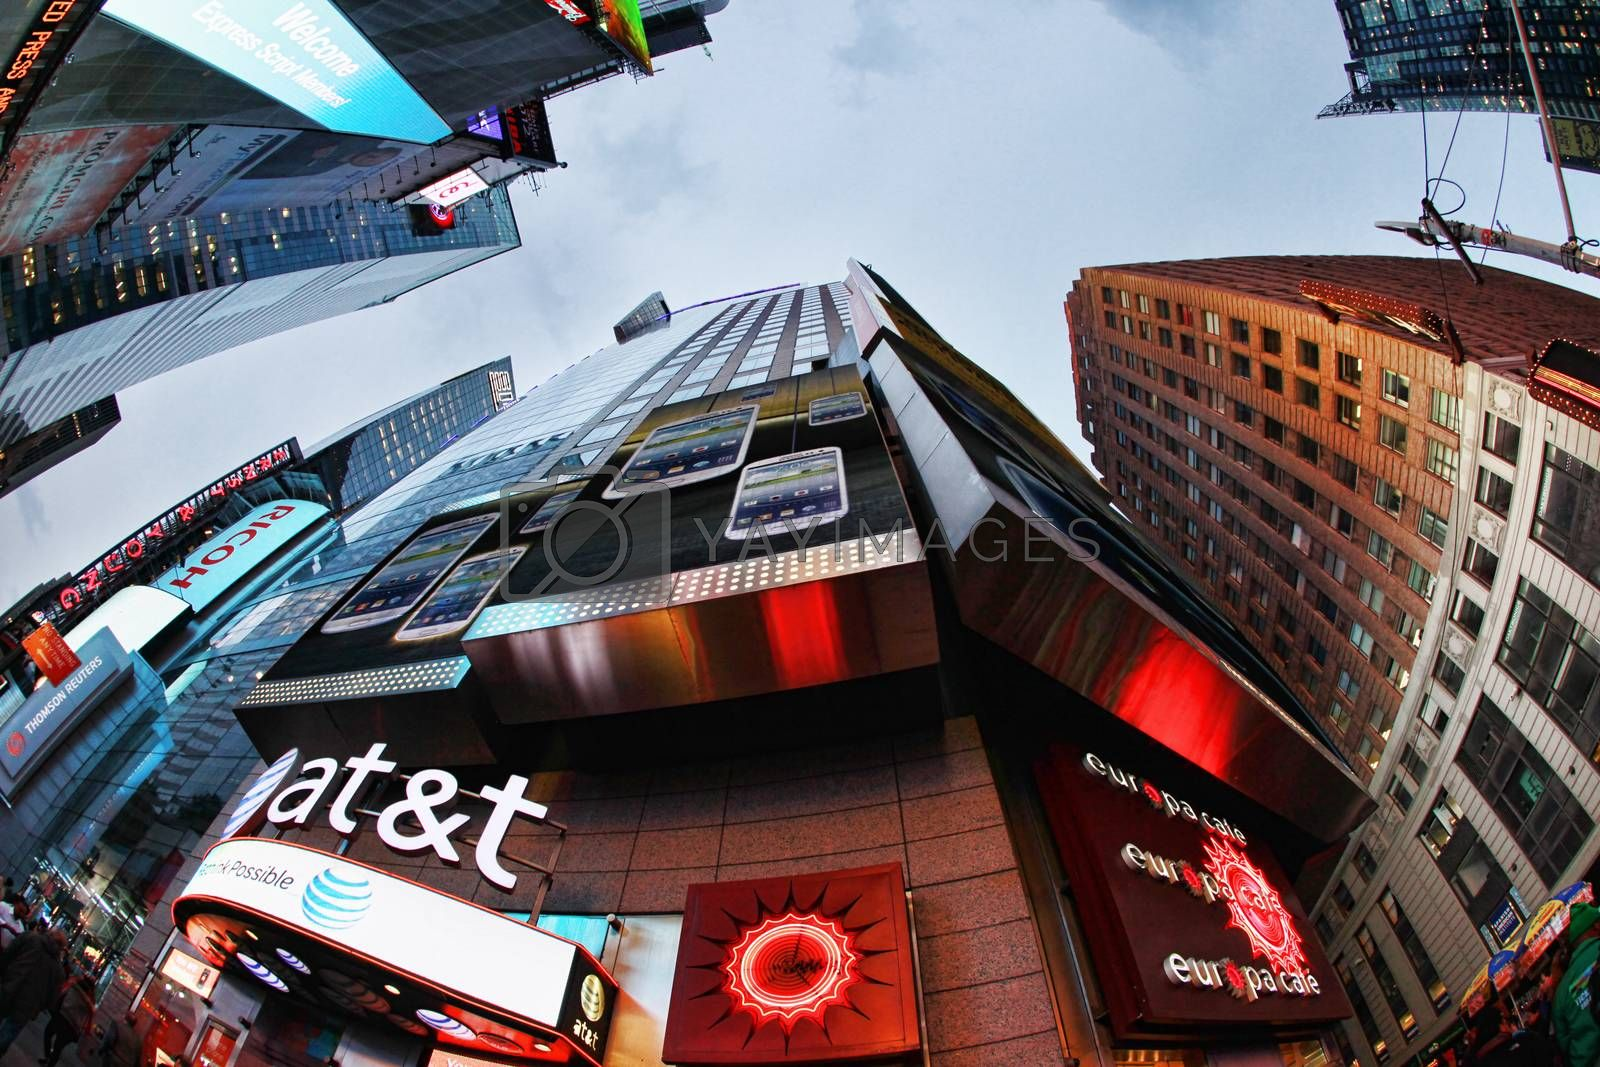 New York, NY, USA - October 9, 2012: Times Square, featured with Broadway Theaters and huge number of LED signs, is a symbol of New York City and the United States, October 9, 2012 in Manhattan, New York City